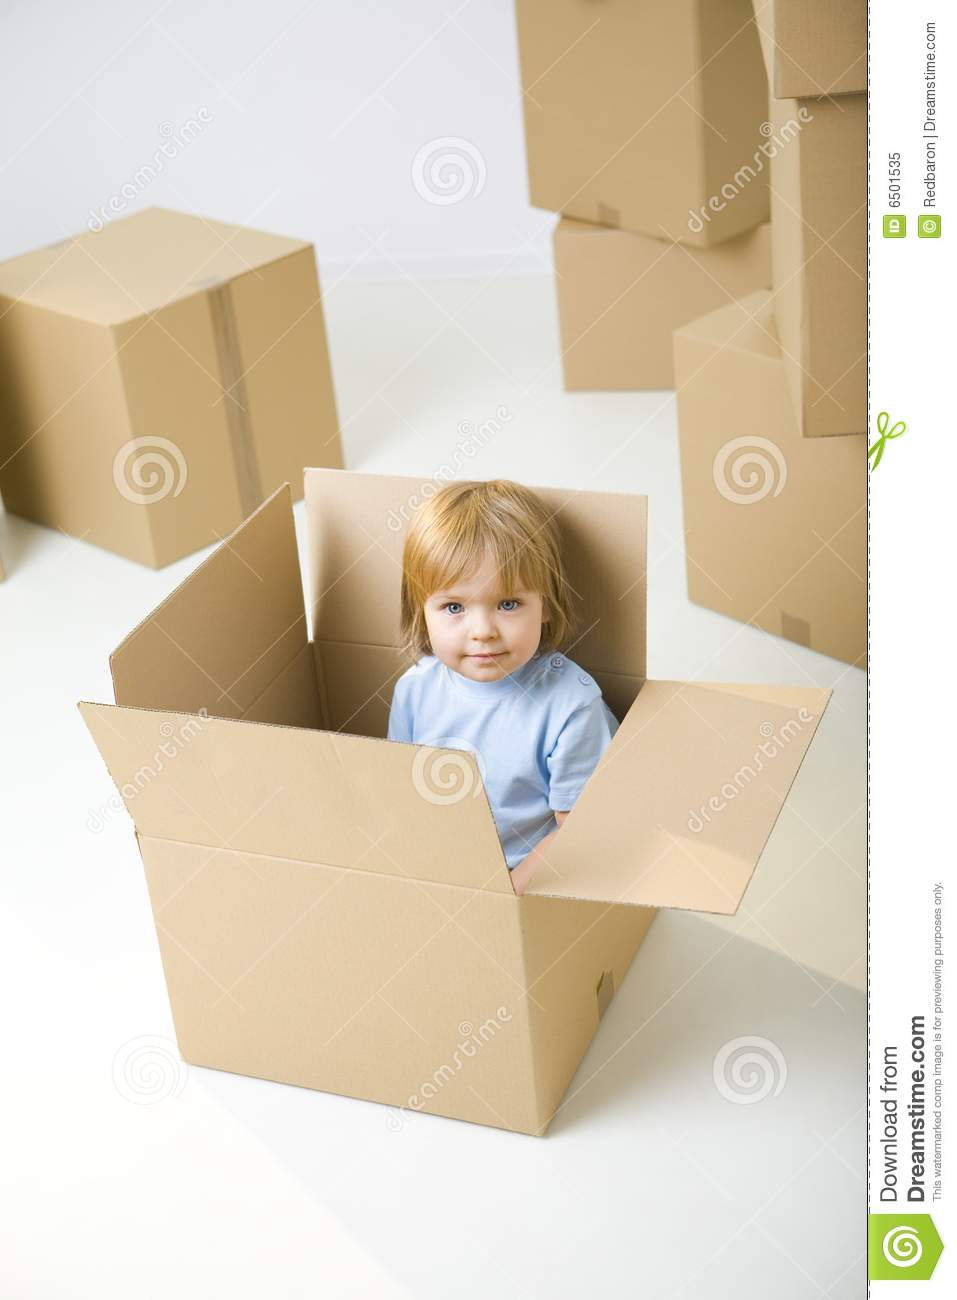 the role of cardboard boxes in childhood days Play idea for playgroups and other ece  using low shelving or boxes to store the blocks will allow children to reach the blocks  cardboard and fabric.